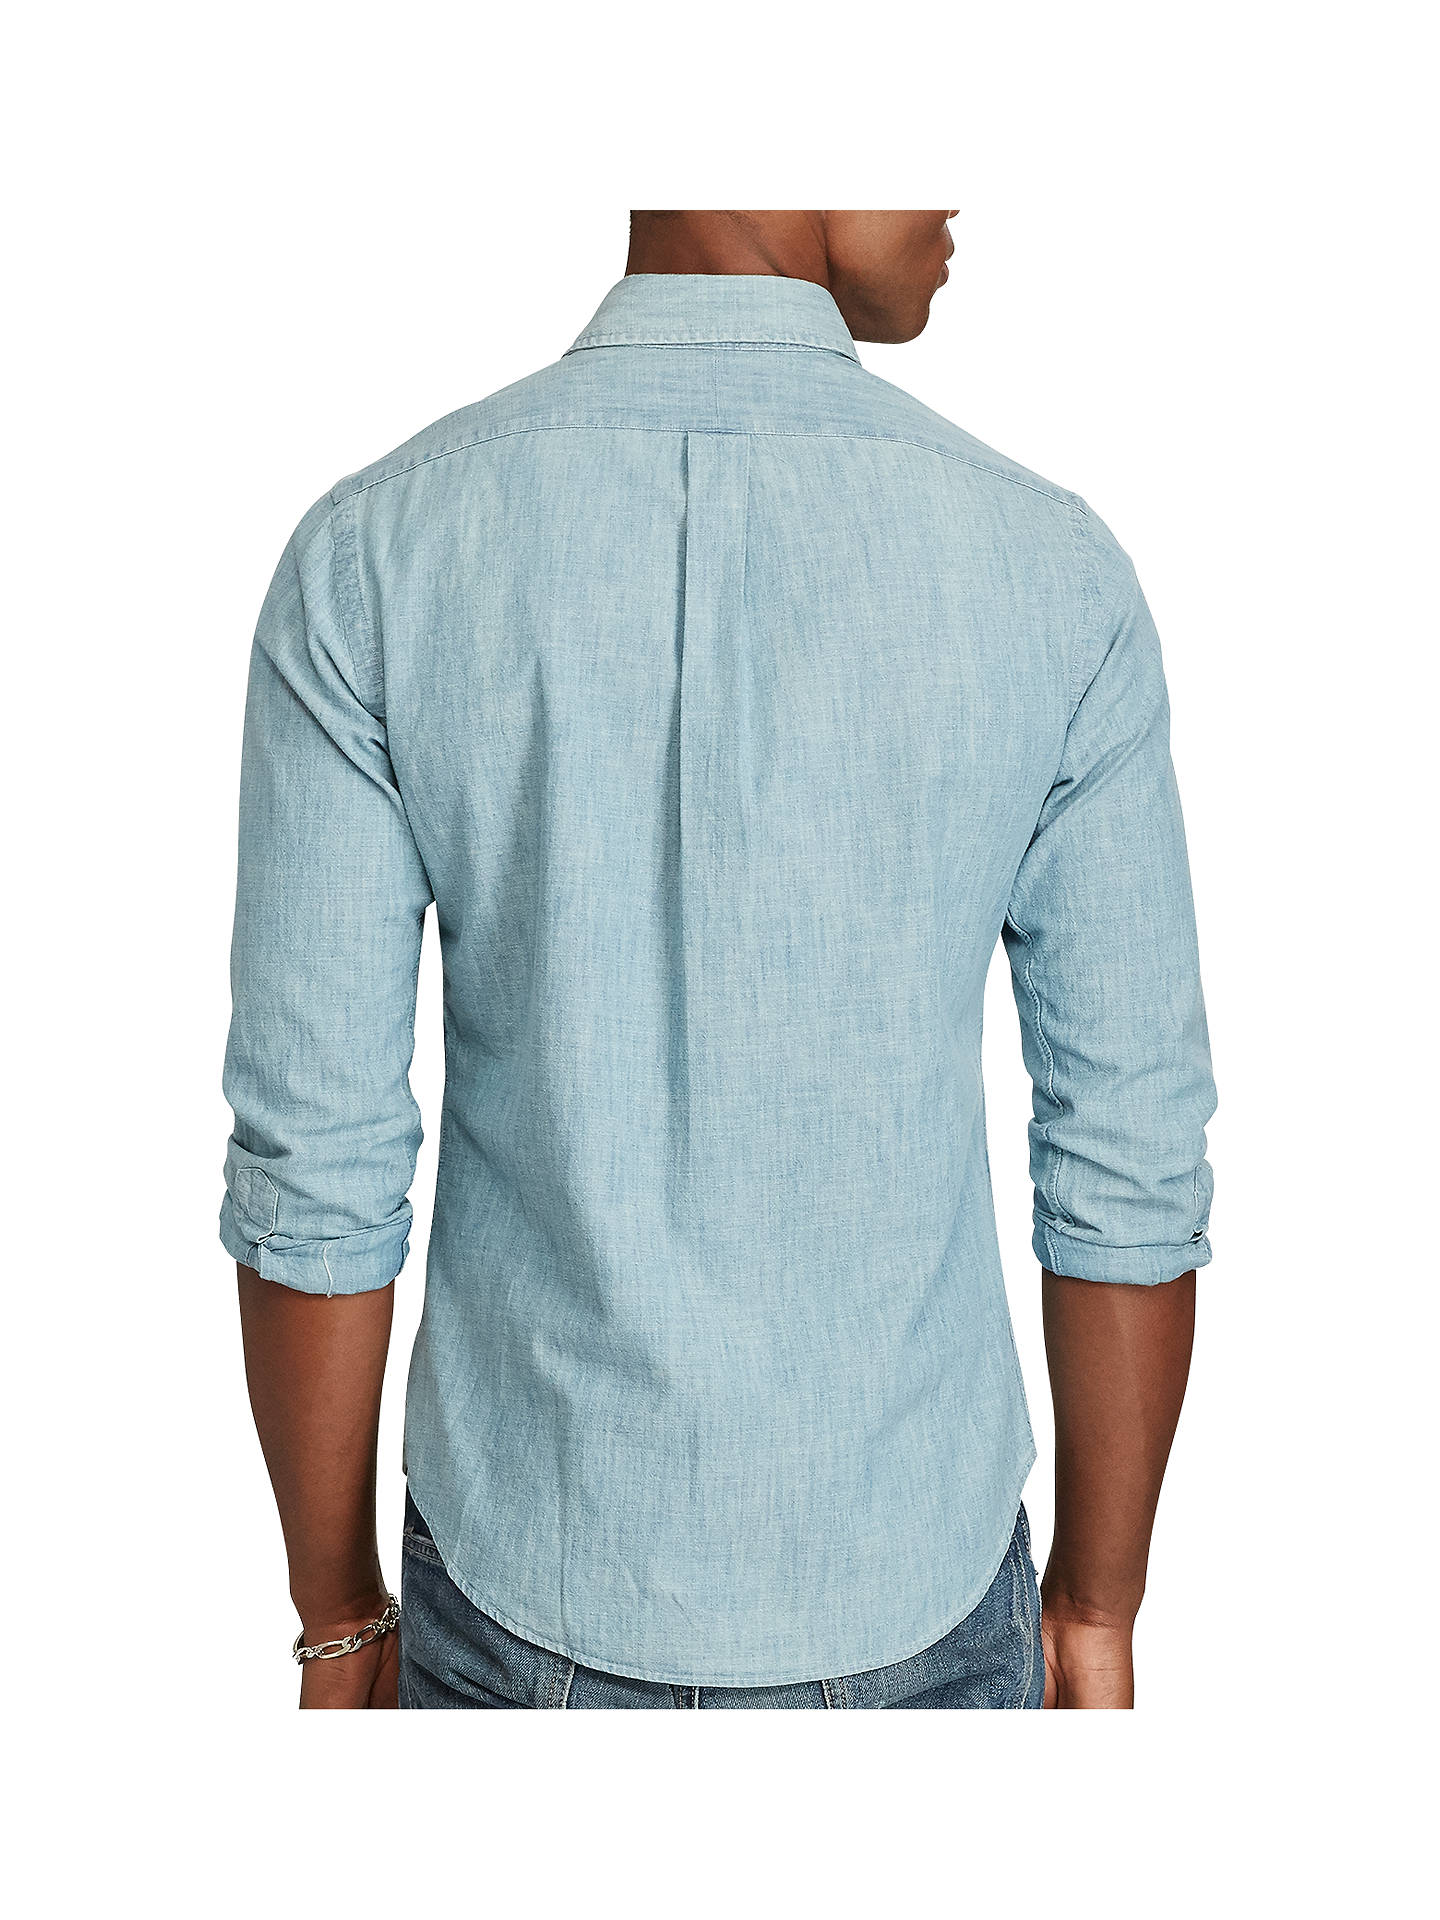 d777a1b0 Buy Polo Ralph Lauren Chambray Slim Fit Shirt, Chambray, L Online at  johnlewis.